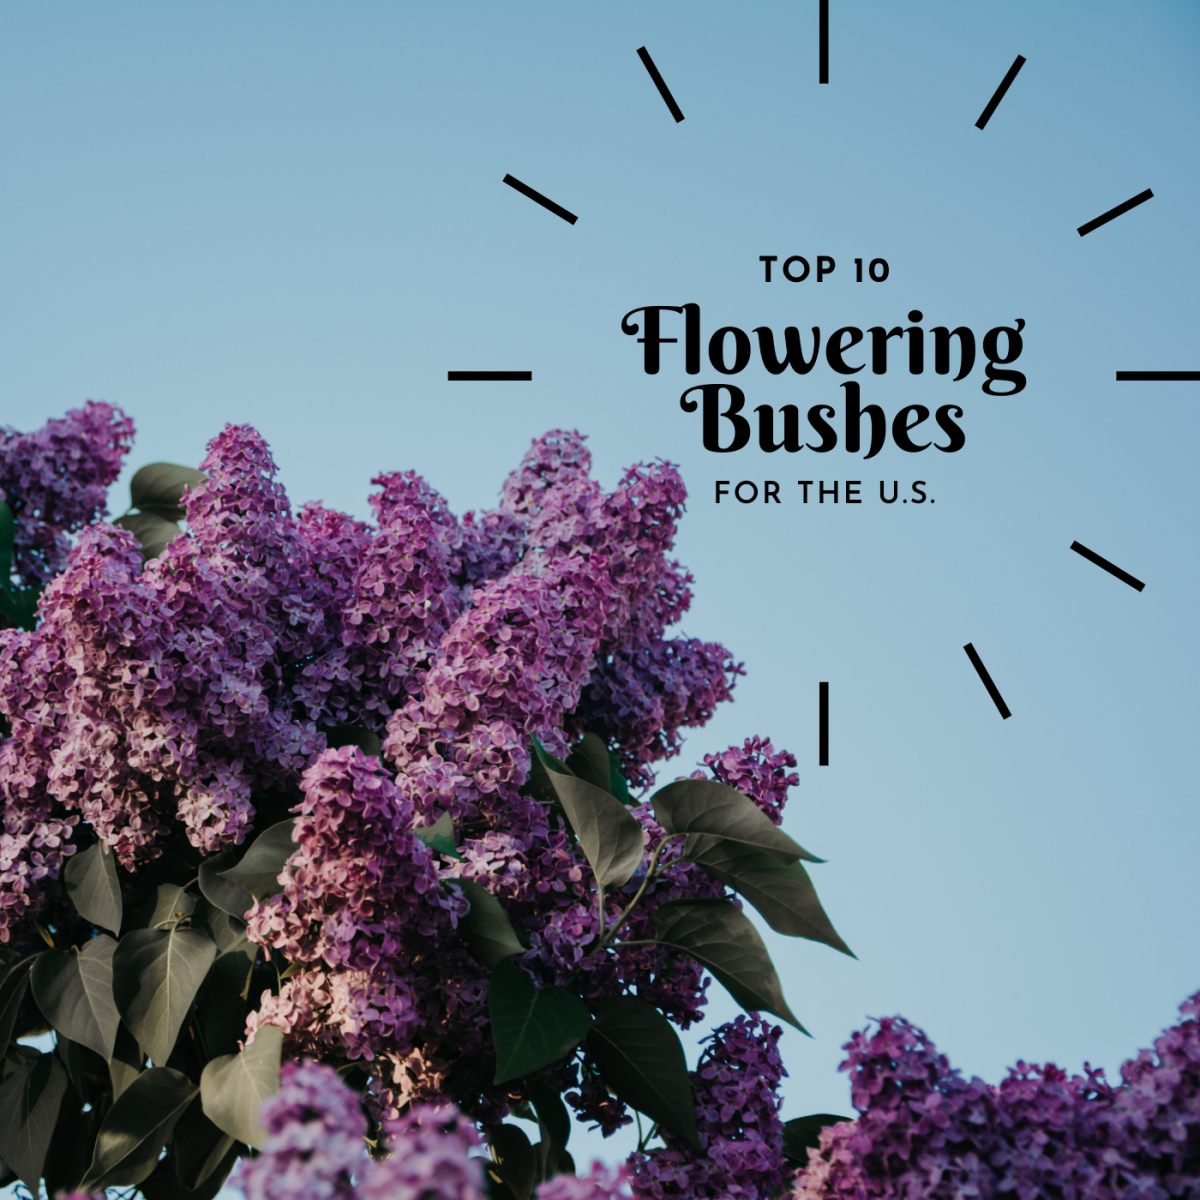 Discover ten flowering shrubs and bushes for eastern and western parts of the U.S.